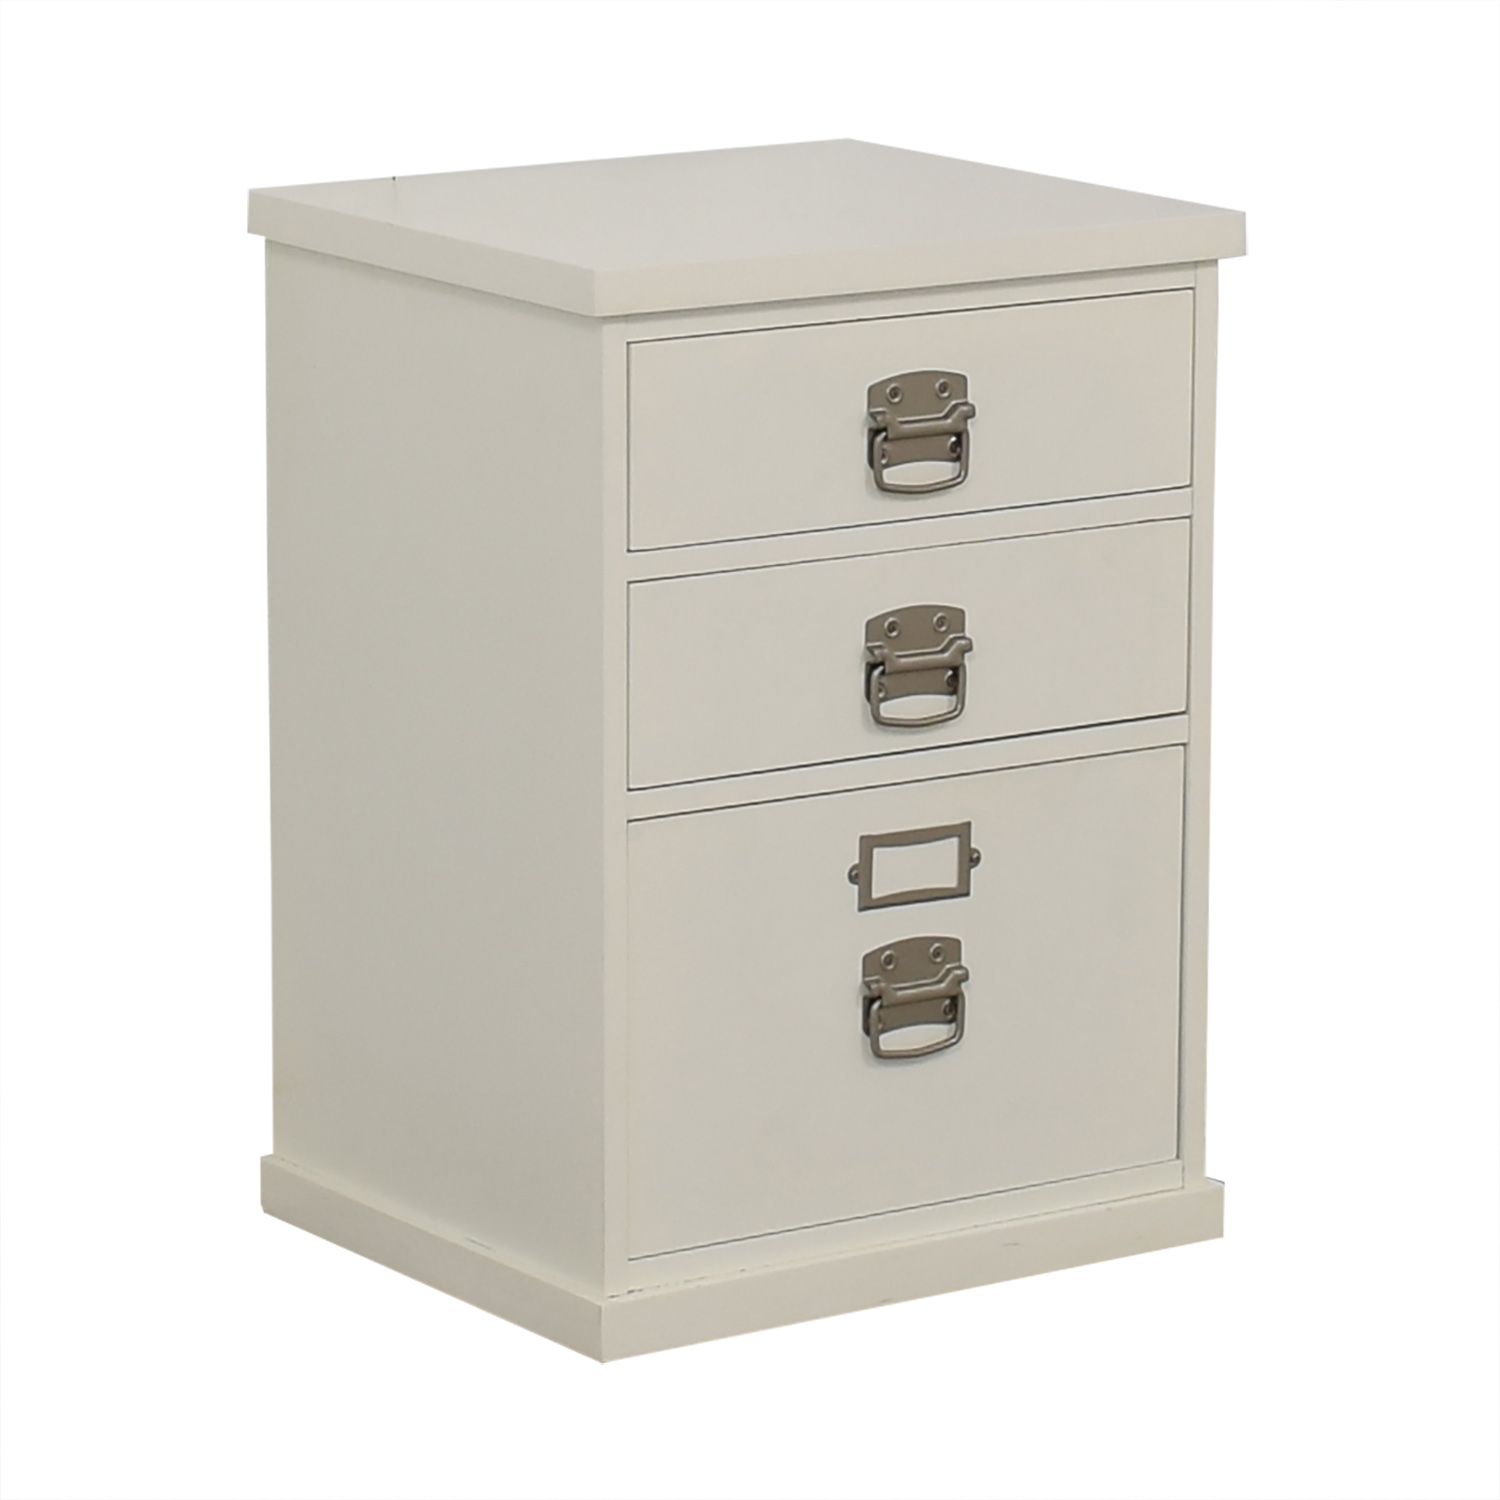 Pottery Barn Pottery Barn Bedford White Three-Drawer File Cabinet nyc